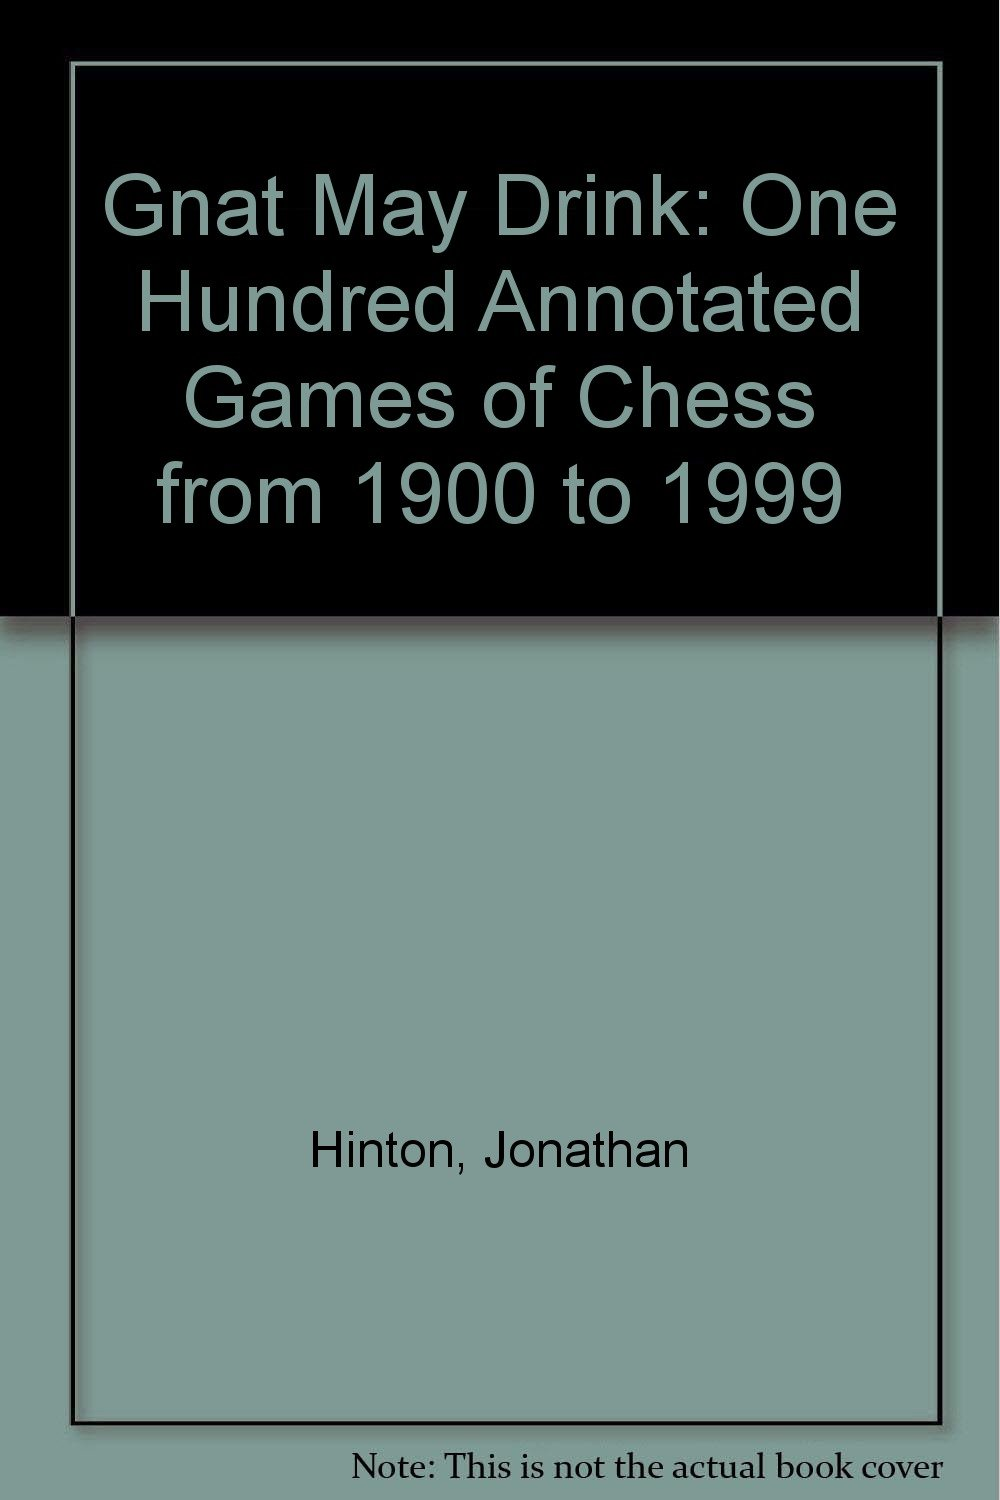 A Gnat May Drink: One Hundred Annotated Games of Chess from 1900 to 1999